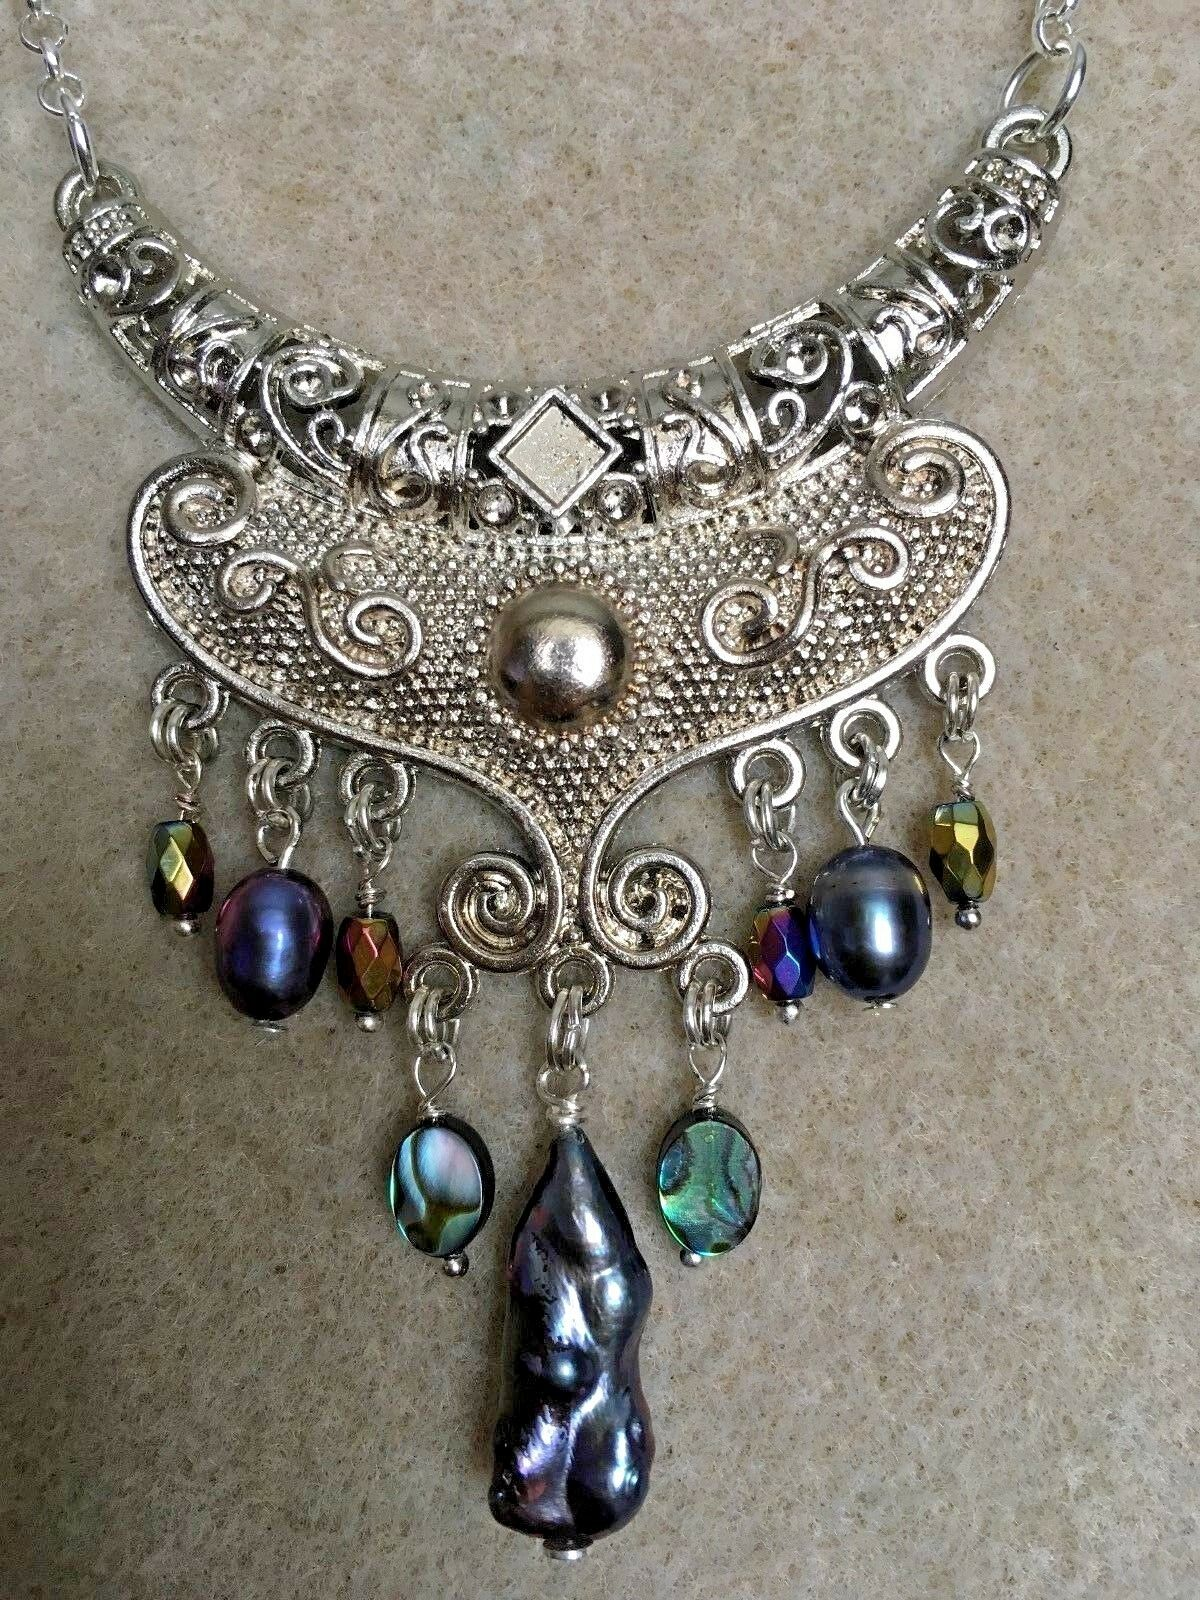 Biwa Pearl, Freshwater Pearls and Abalone on a Large Connector Pendant